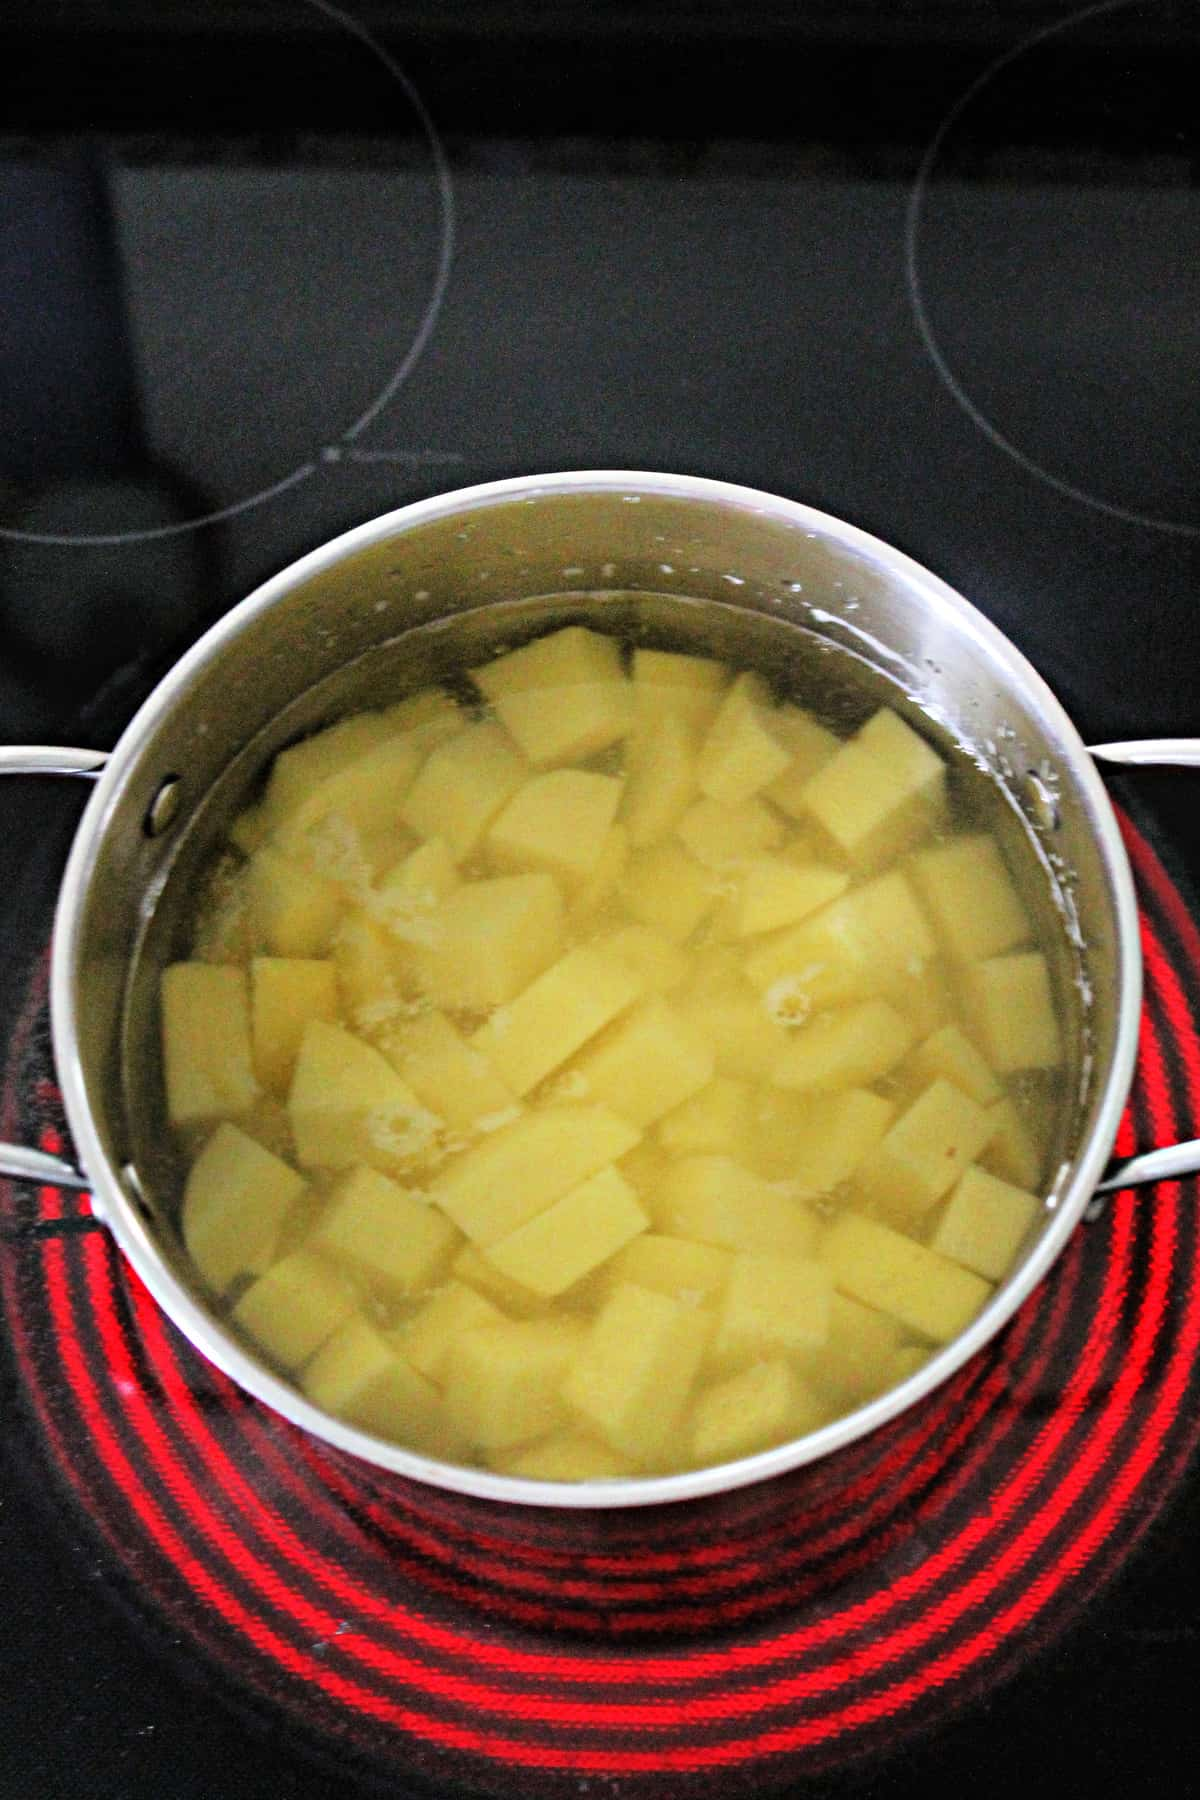 Overhead shot of diced potatoes in a pot with water on stovetop.